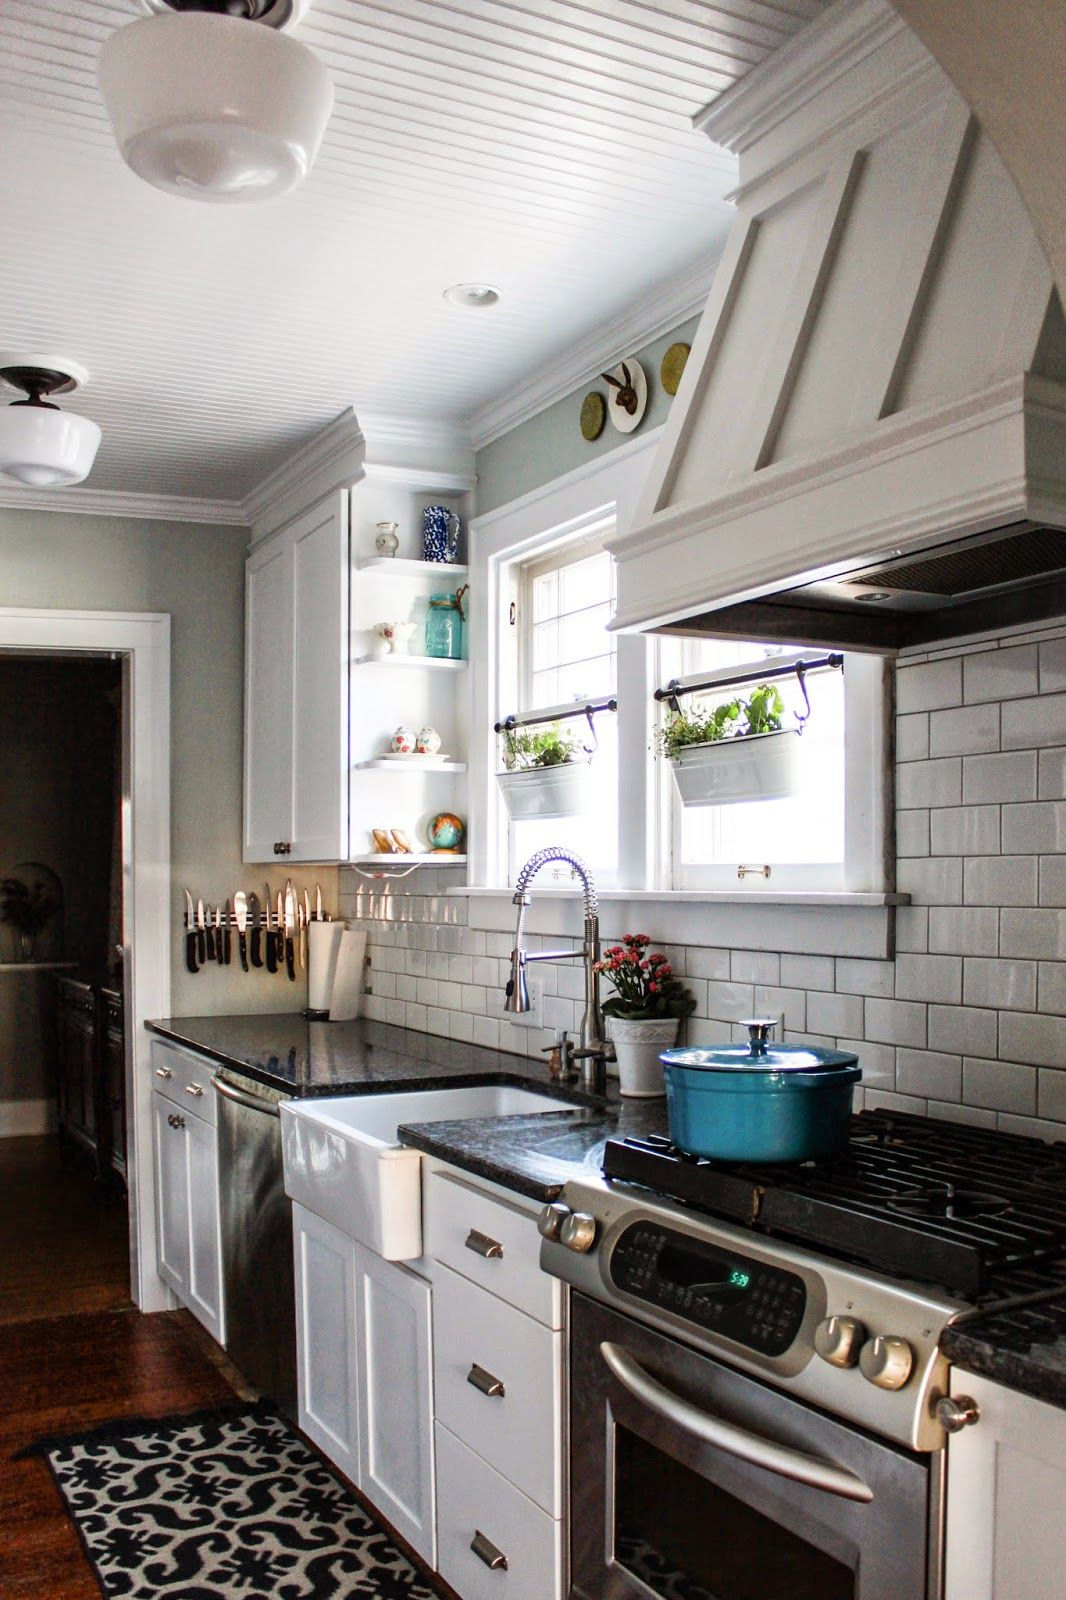 confessions of a diy aholic kitchen makeover with images kitchen remodel small galley on i kitchen remodel id=88763